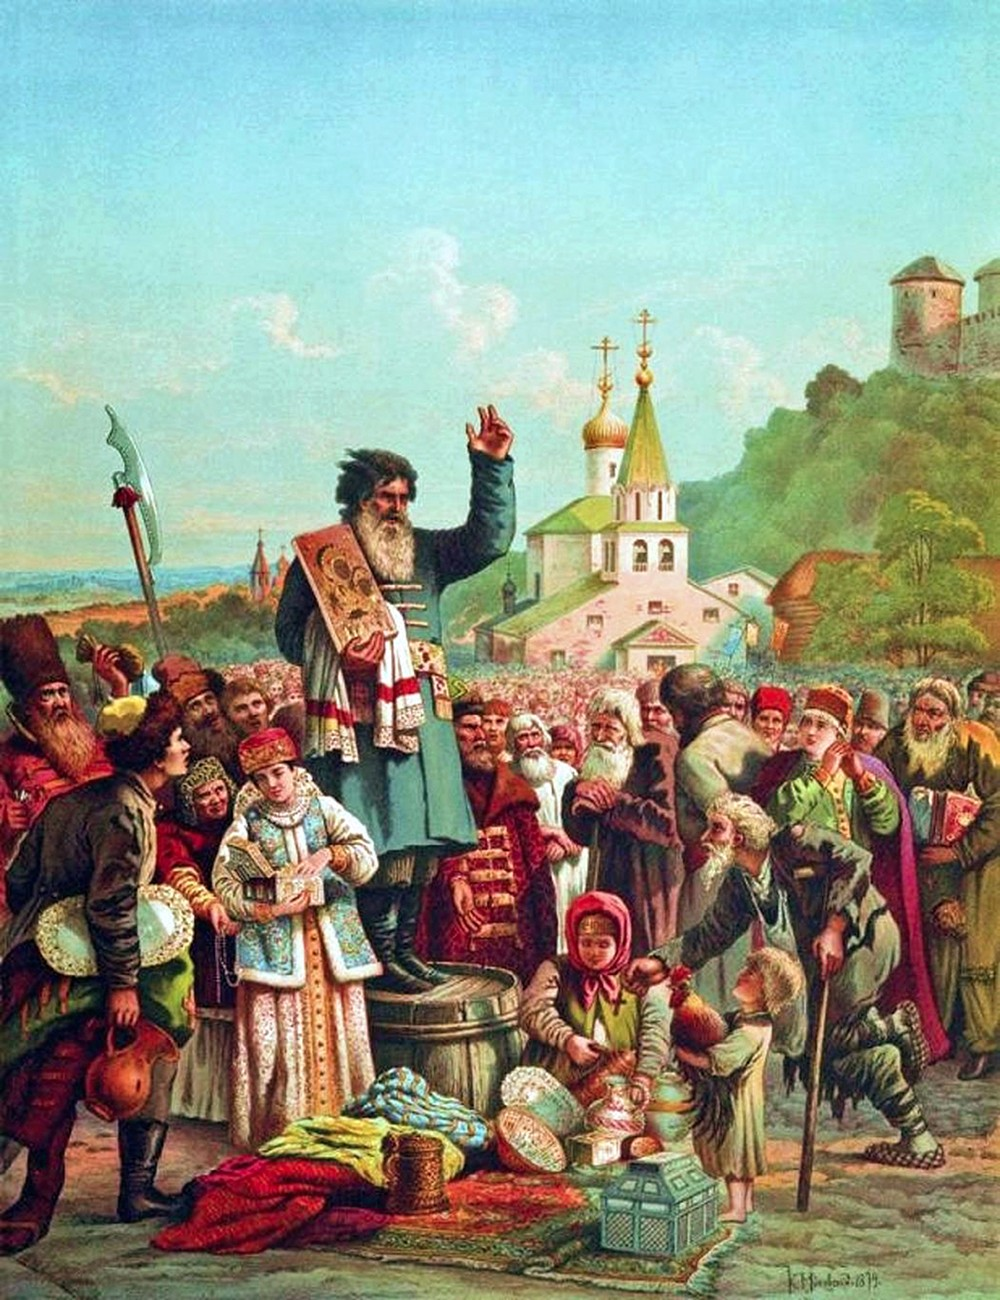 Konstantin Makovsky. The Call to Arms of Kuzma Minin in Novgorod in 1611. nd. 1860s